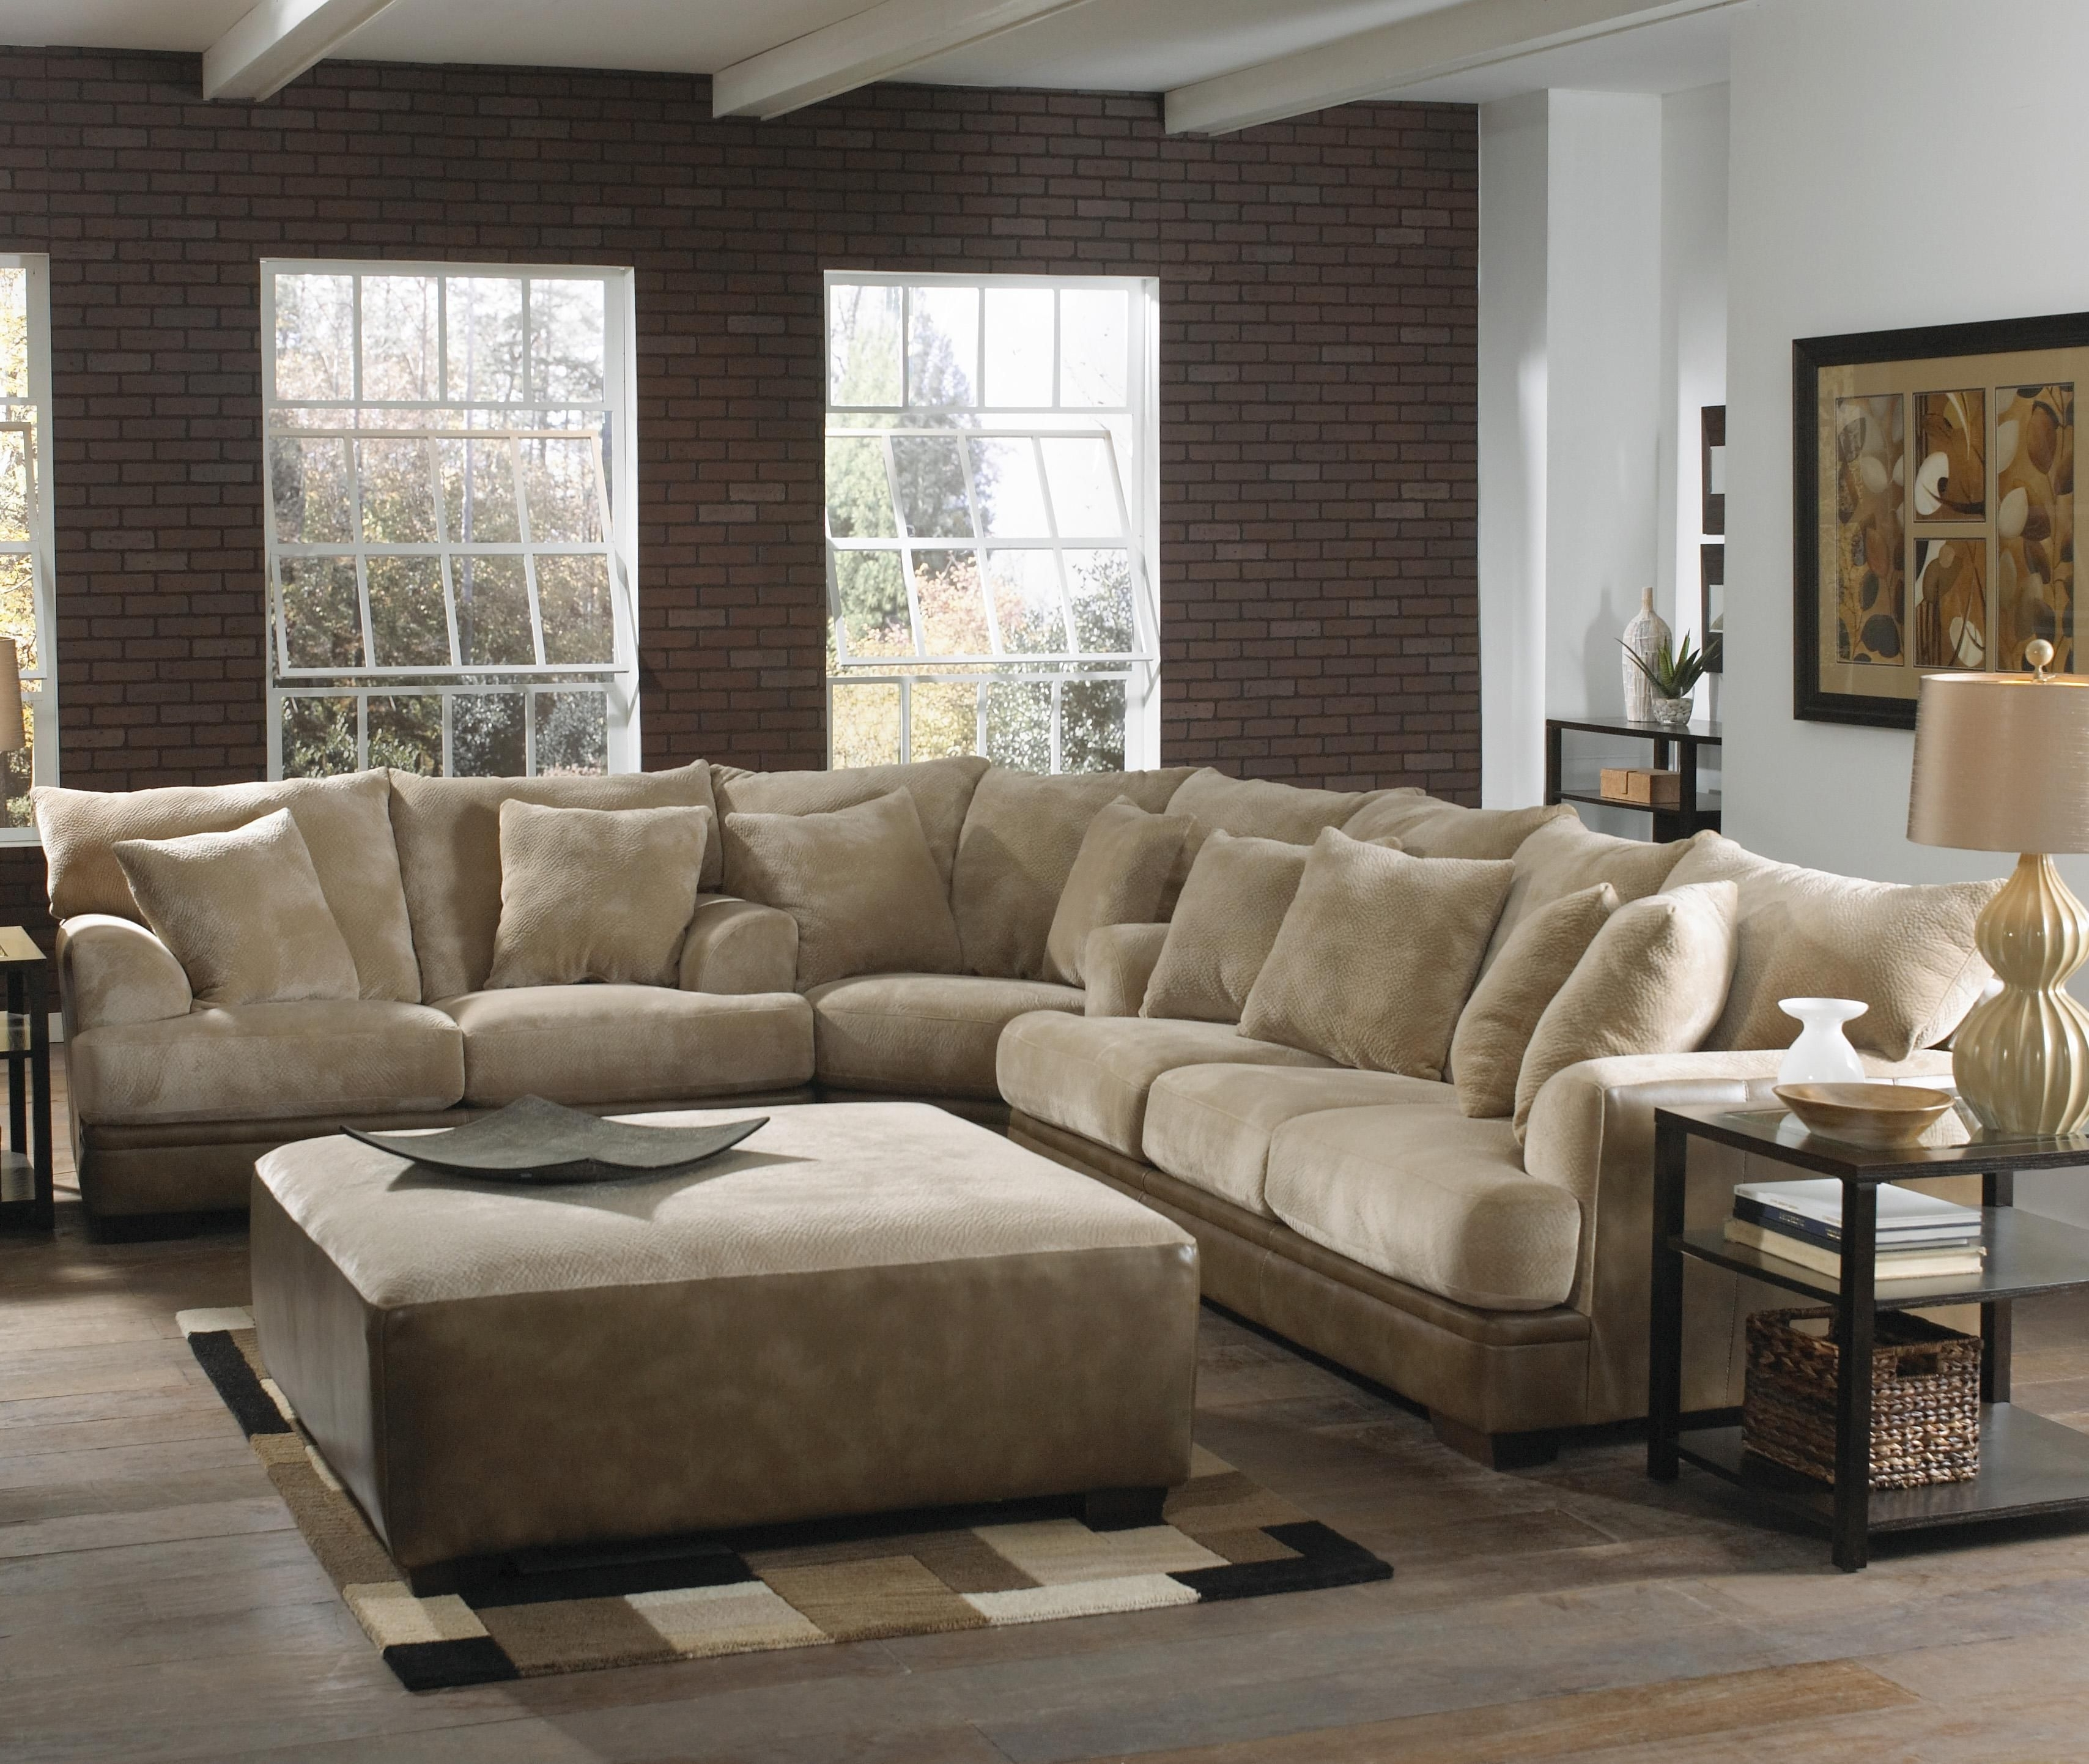 Ontario Sectional Sofas Throughout Trendy Barkley Large L Shaped Sectional Sofa With Right Side Loveseat (View 12 of 20)